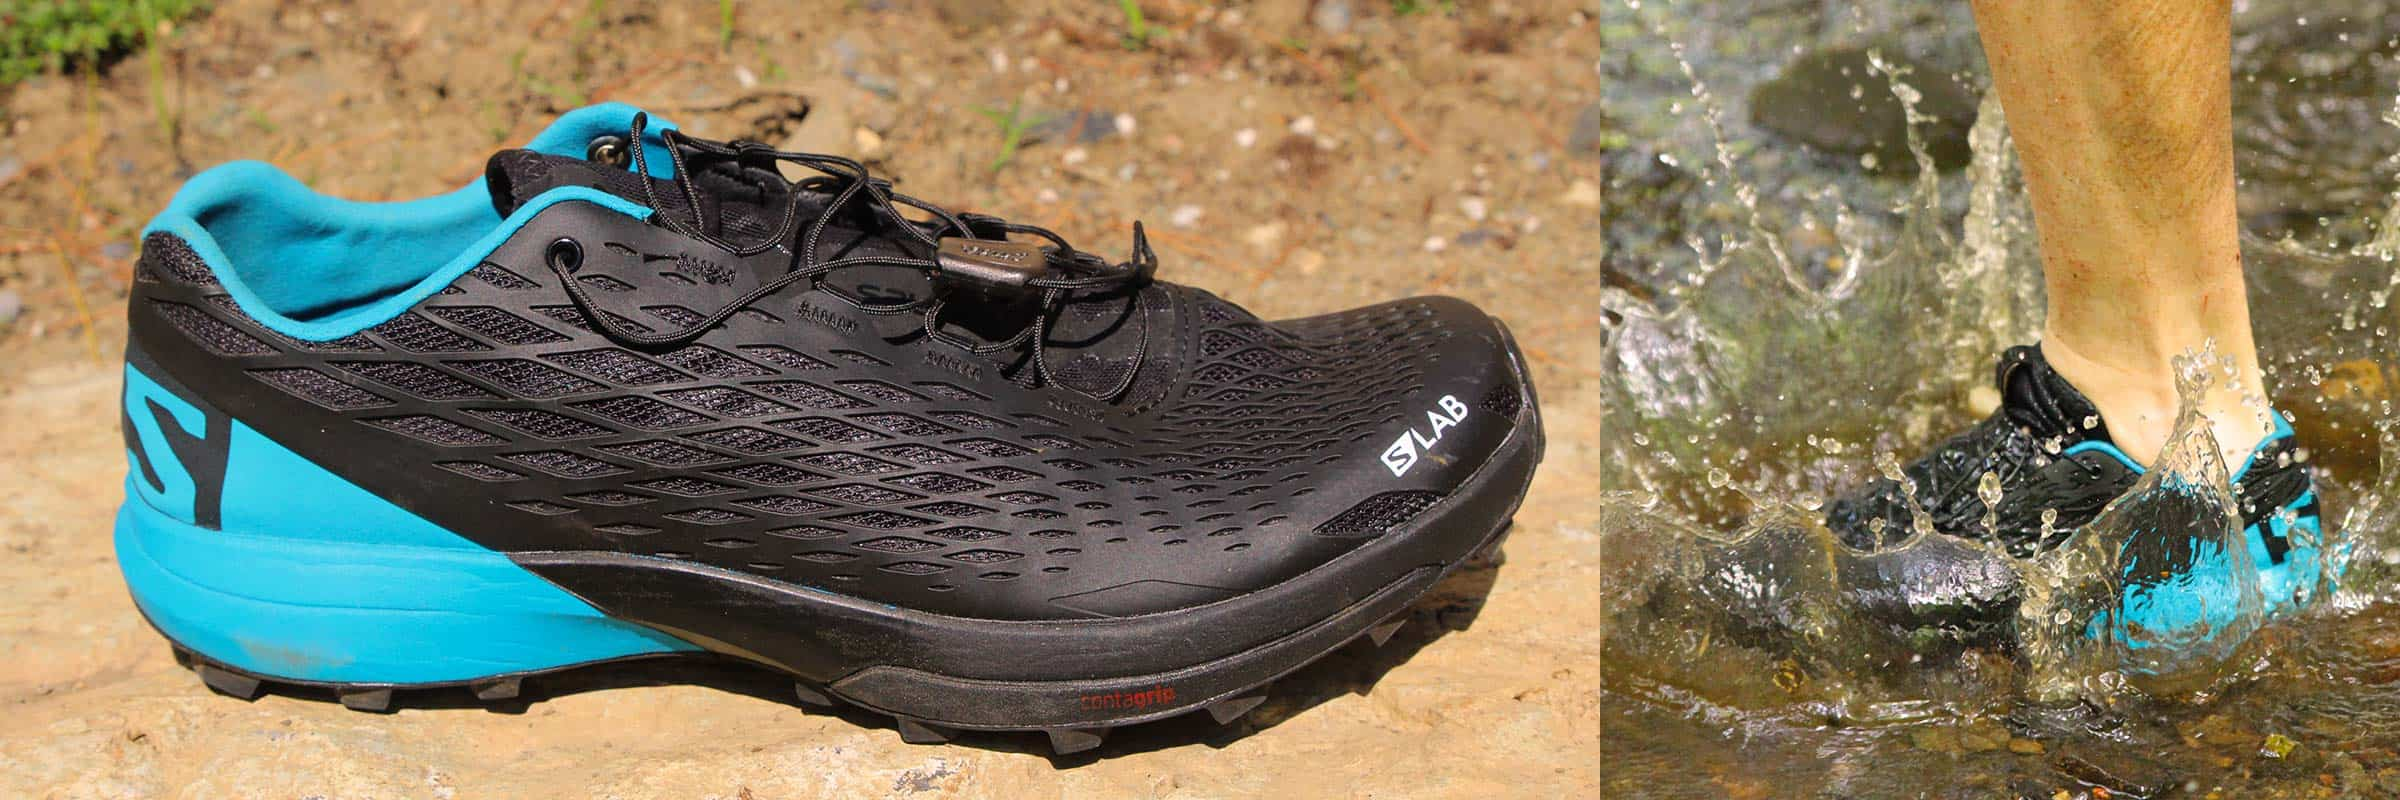 Running, Salomon. Salomon S-LAB XA Amphib Trail Running Shoe Review